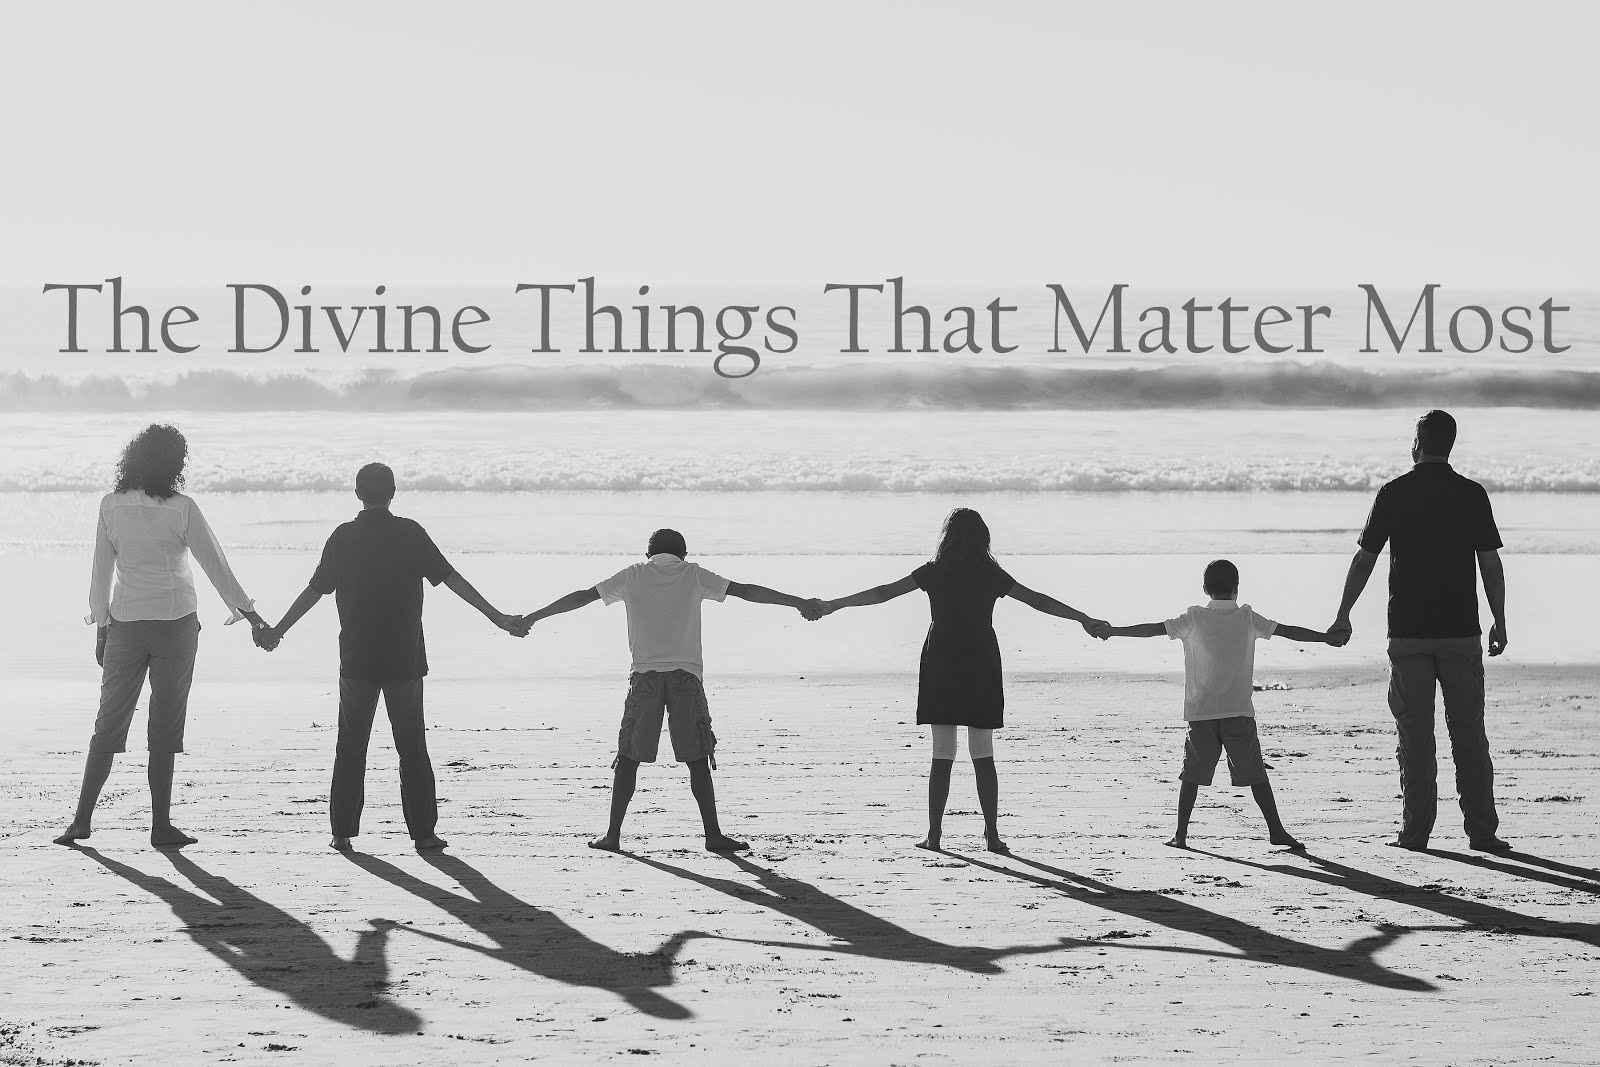 The Divine Things that Matter Most